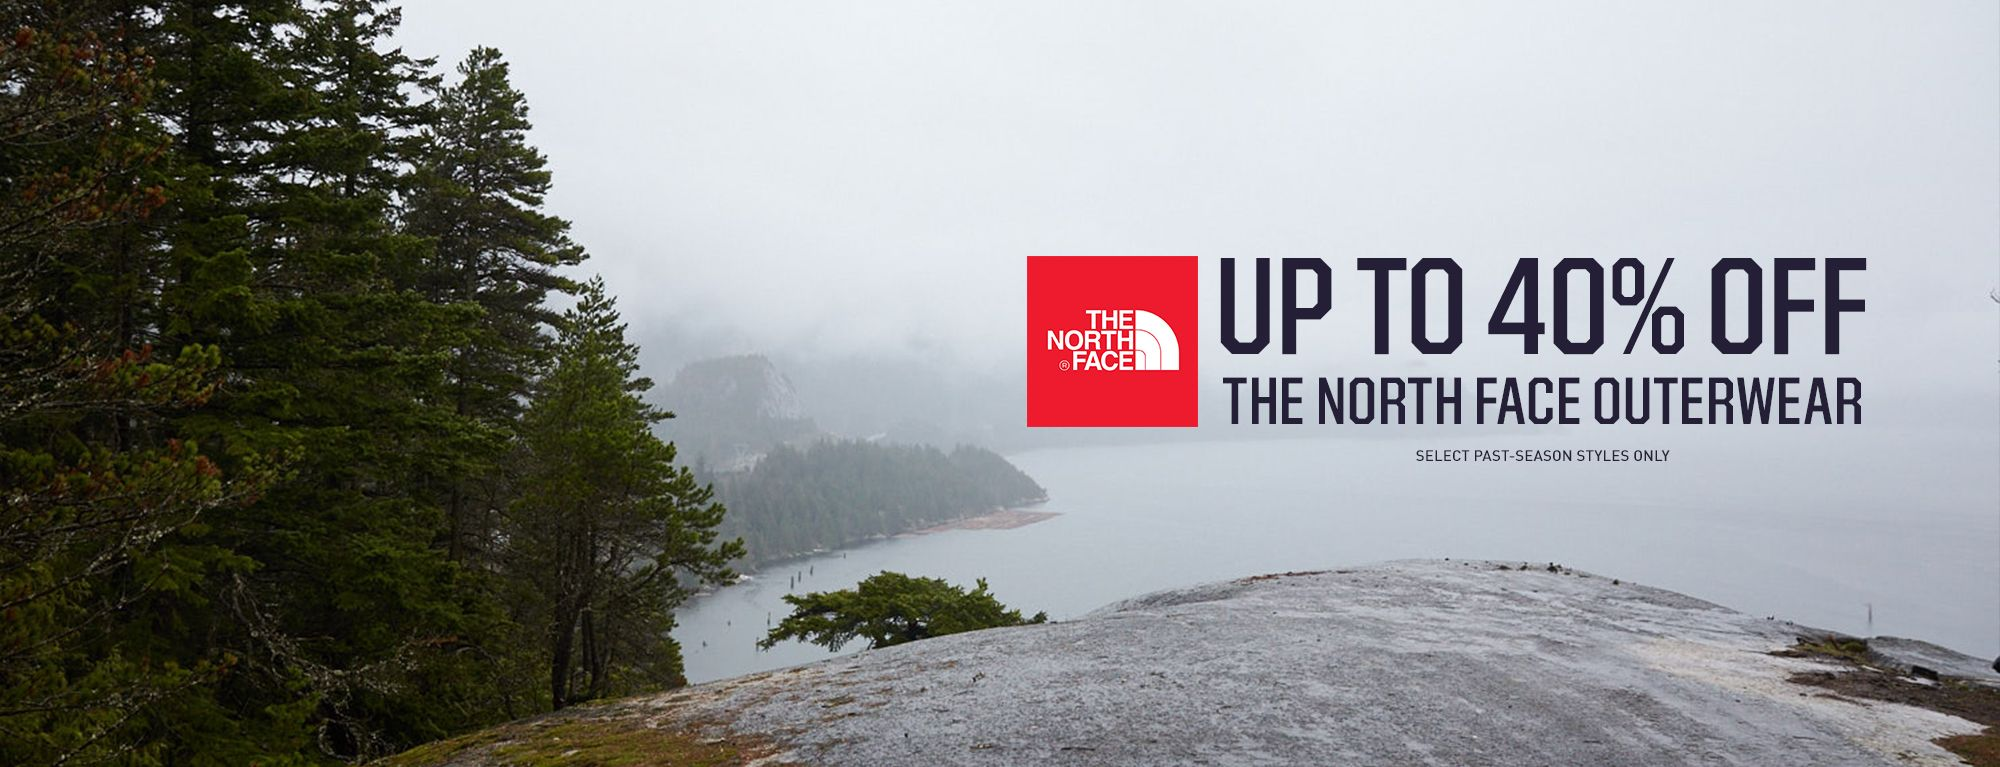 Up to 40% off The North Face Outerwear - Shop Now